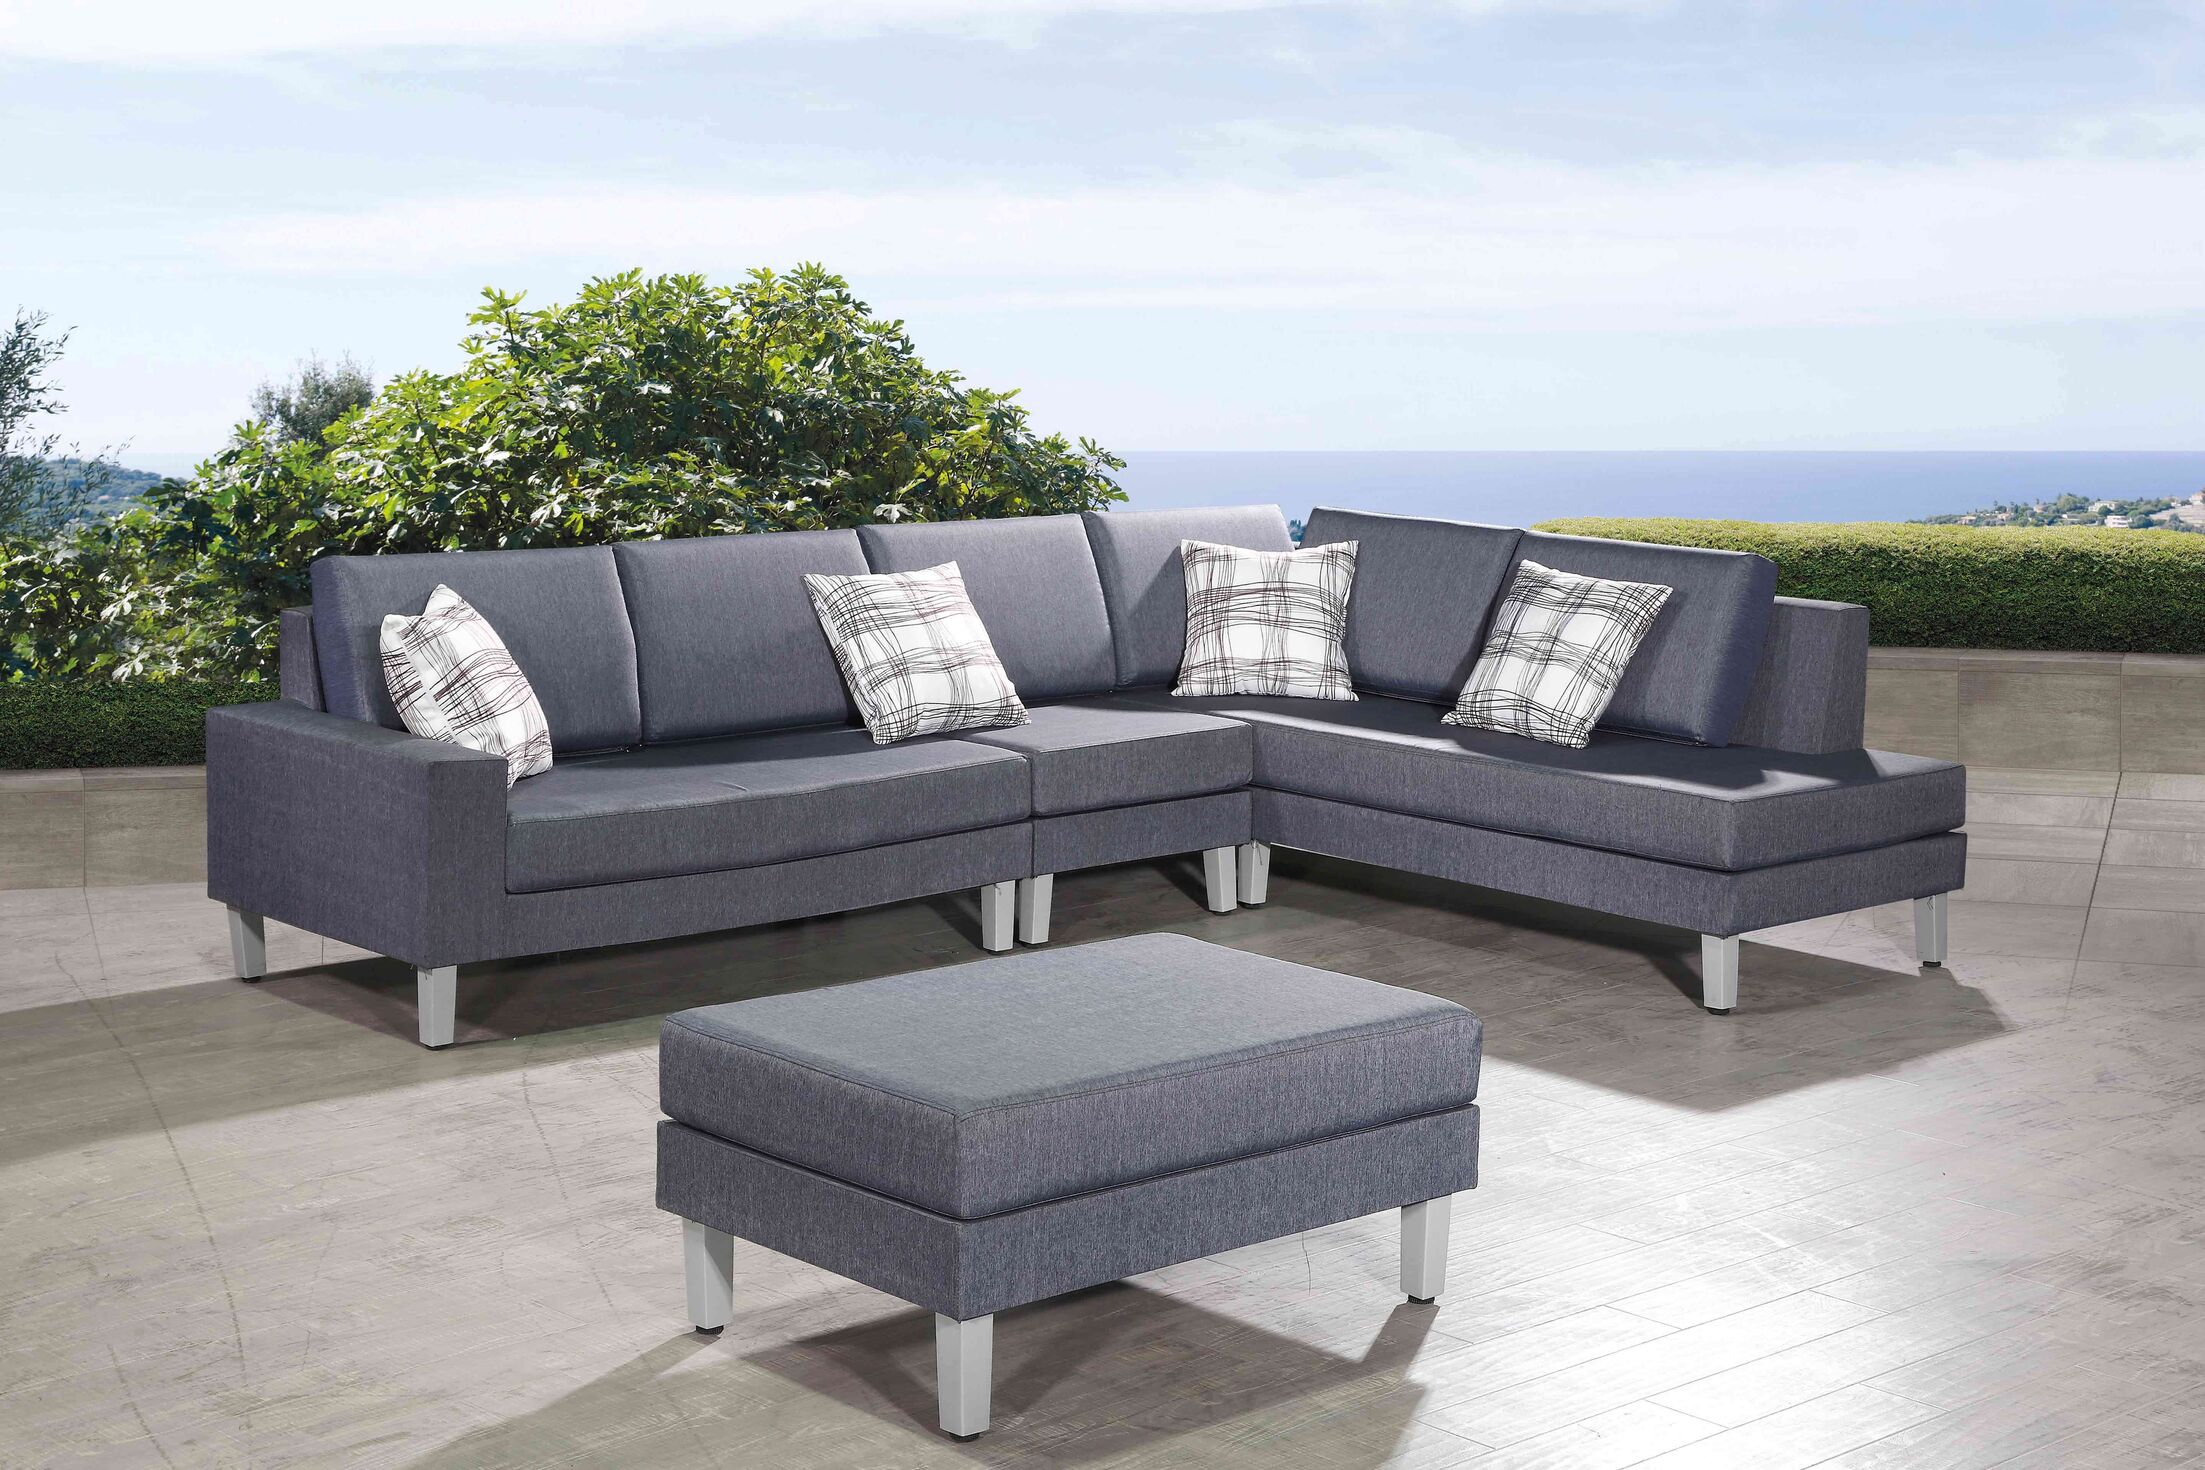 Pruitt 4 Piece Sectional Seating Group with Cushions